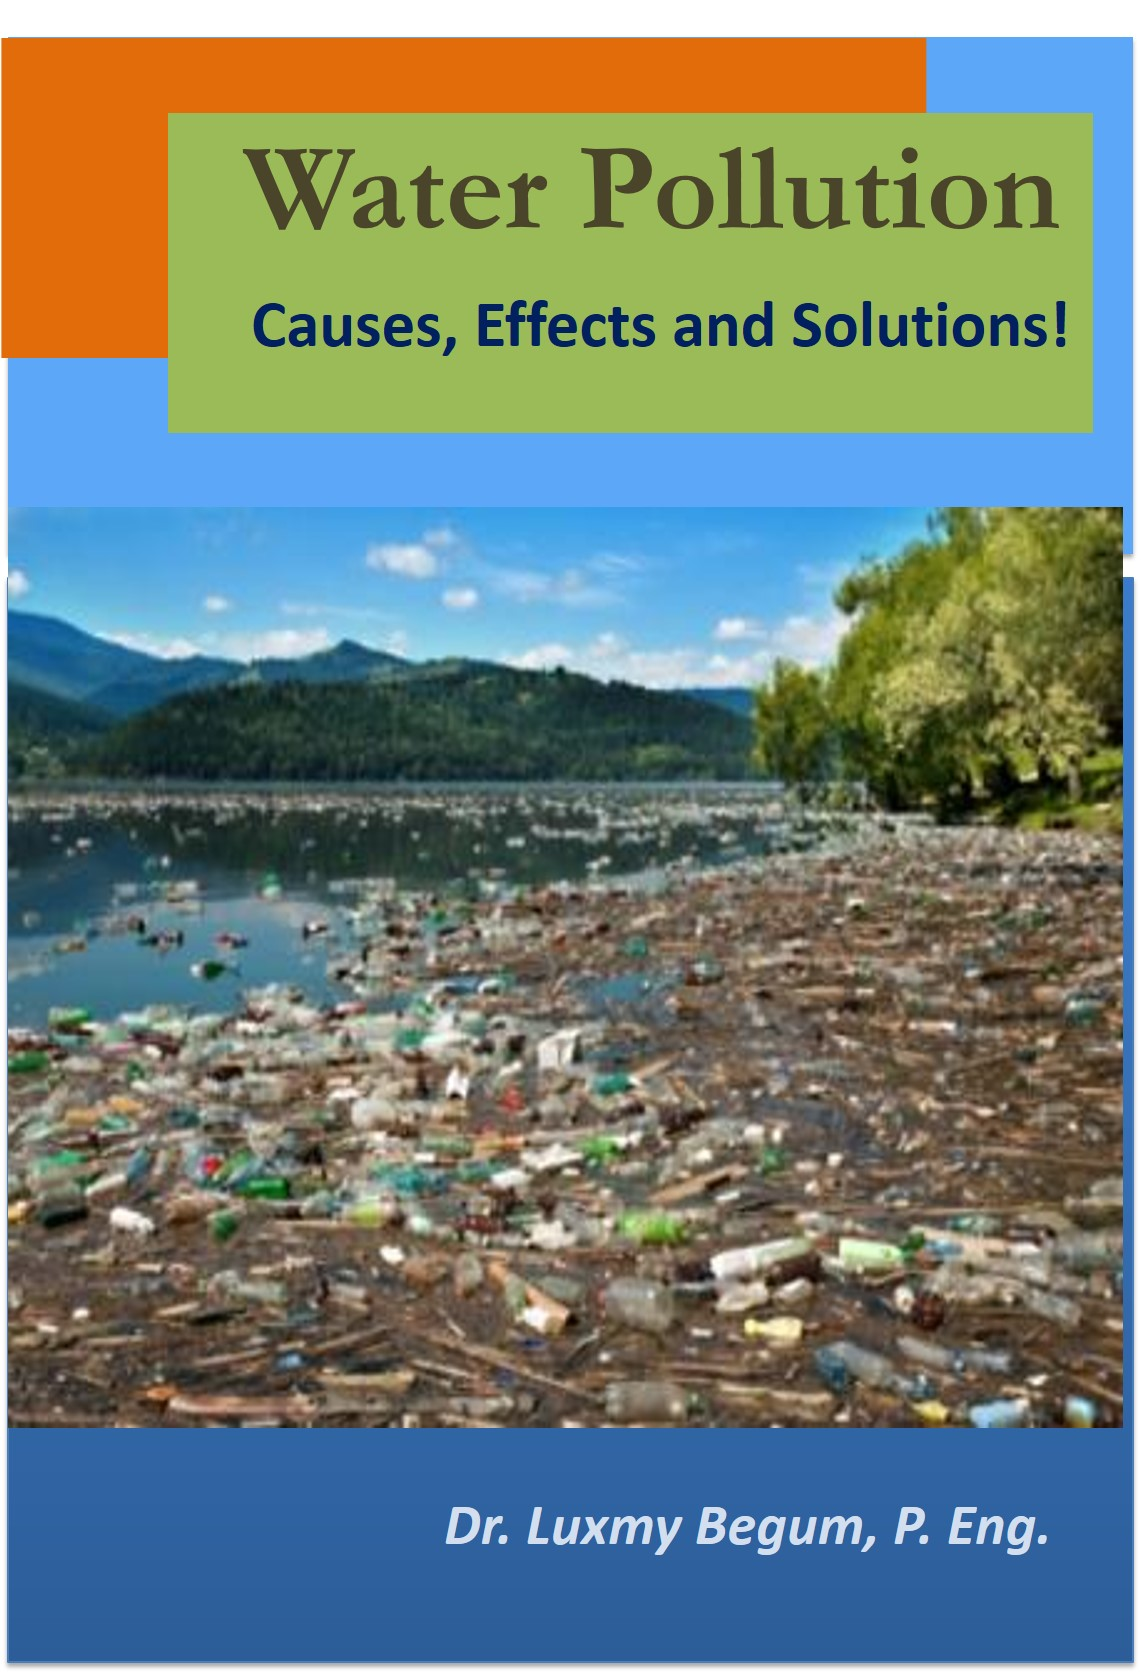 essay on effects of water pollution For years man has been polluting our vast resource of oceans, not expecting to ever cause harm to them - how water pollution effects marine life introduction.